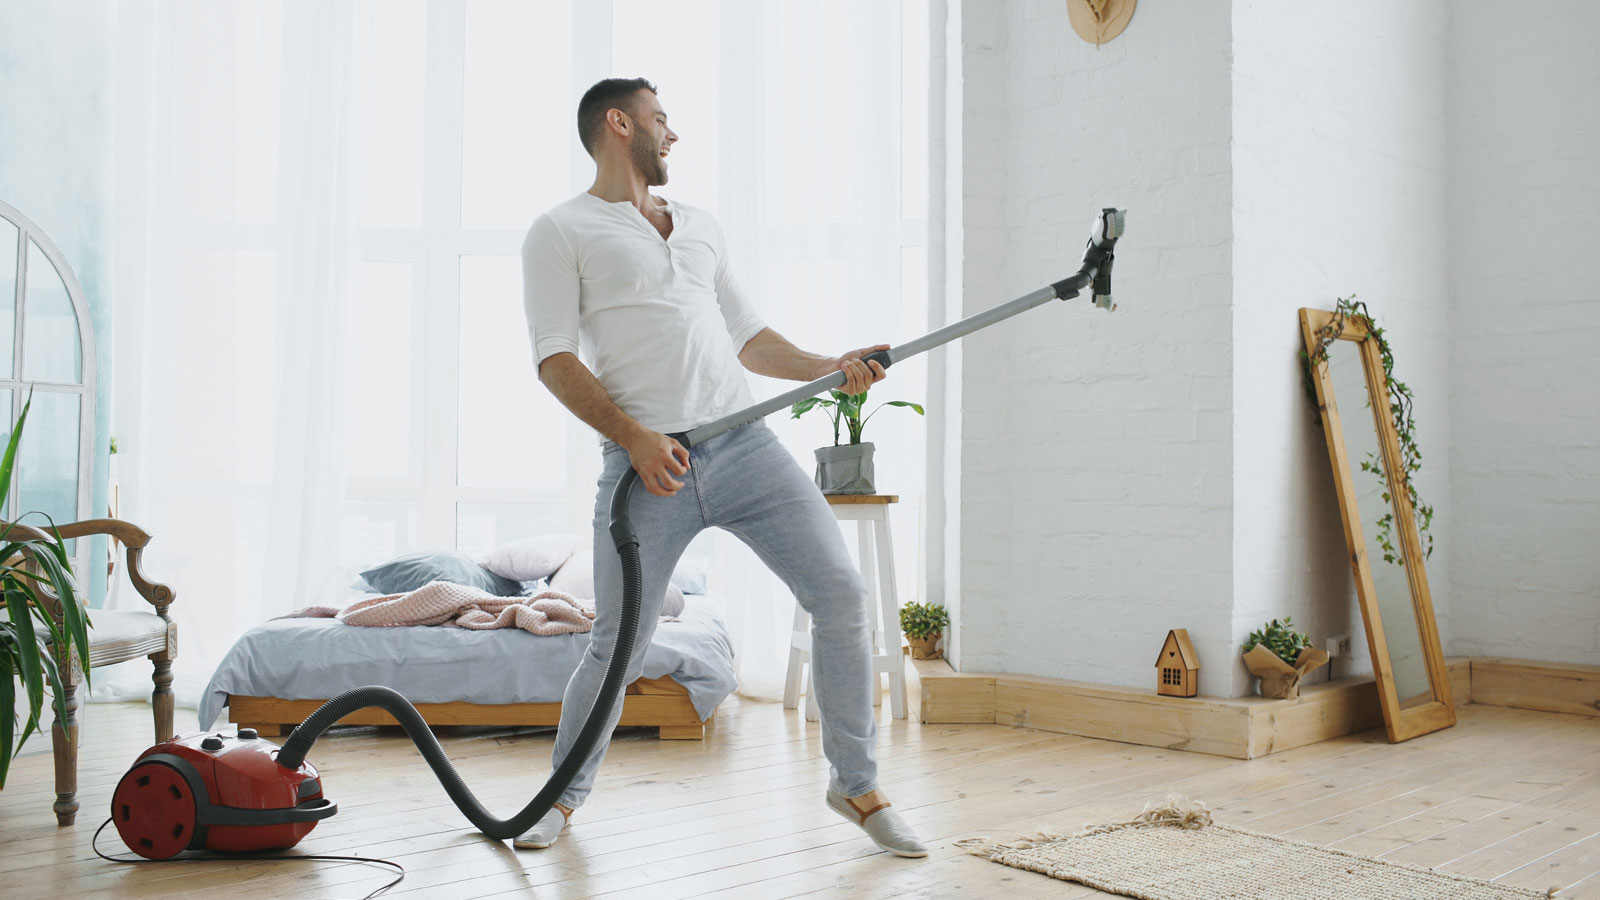 Man dancing with vaccuum